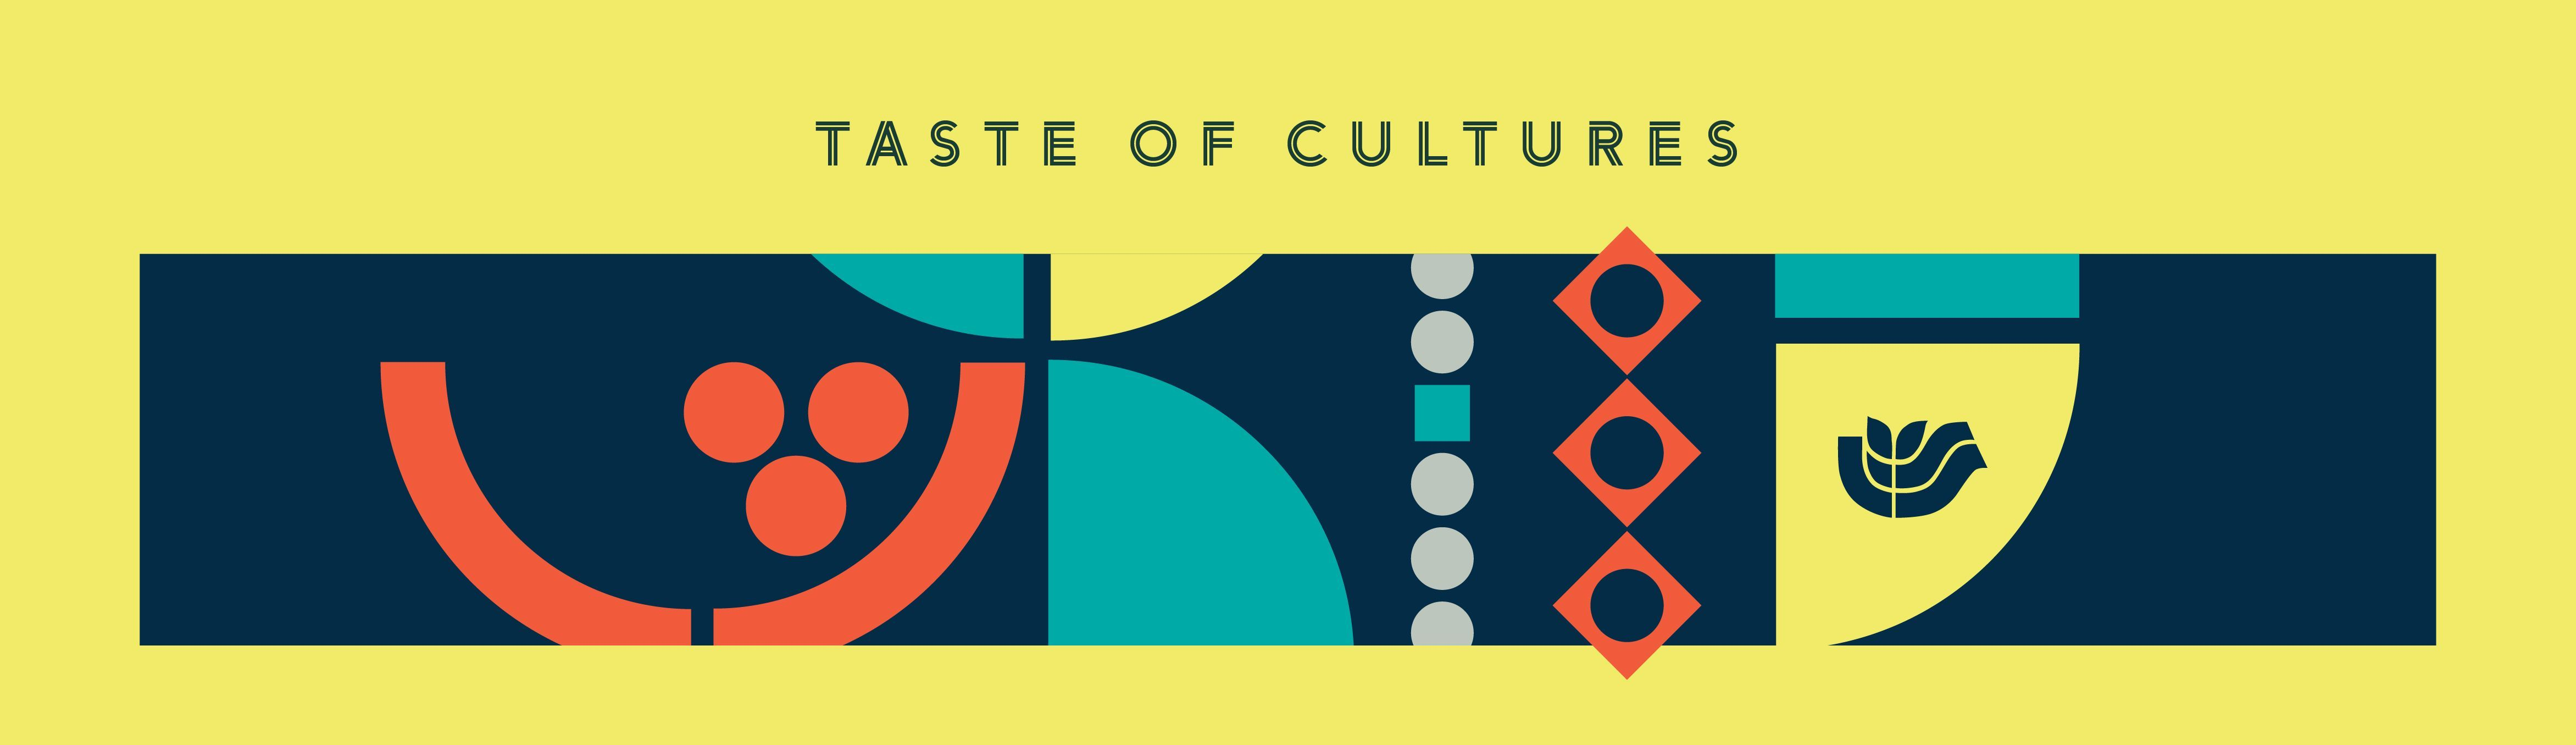 Taste of Cultures Event, Sioux Falls, theme